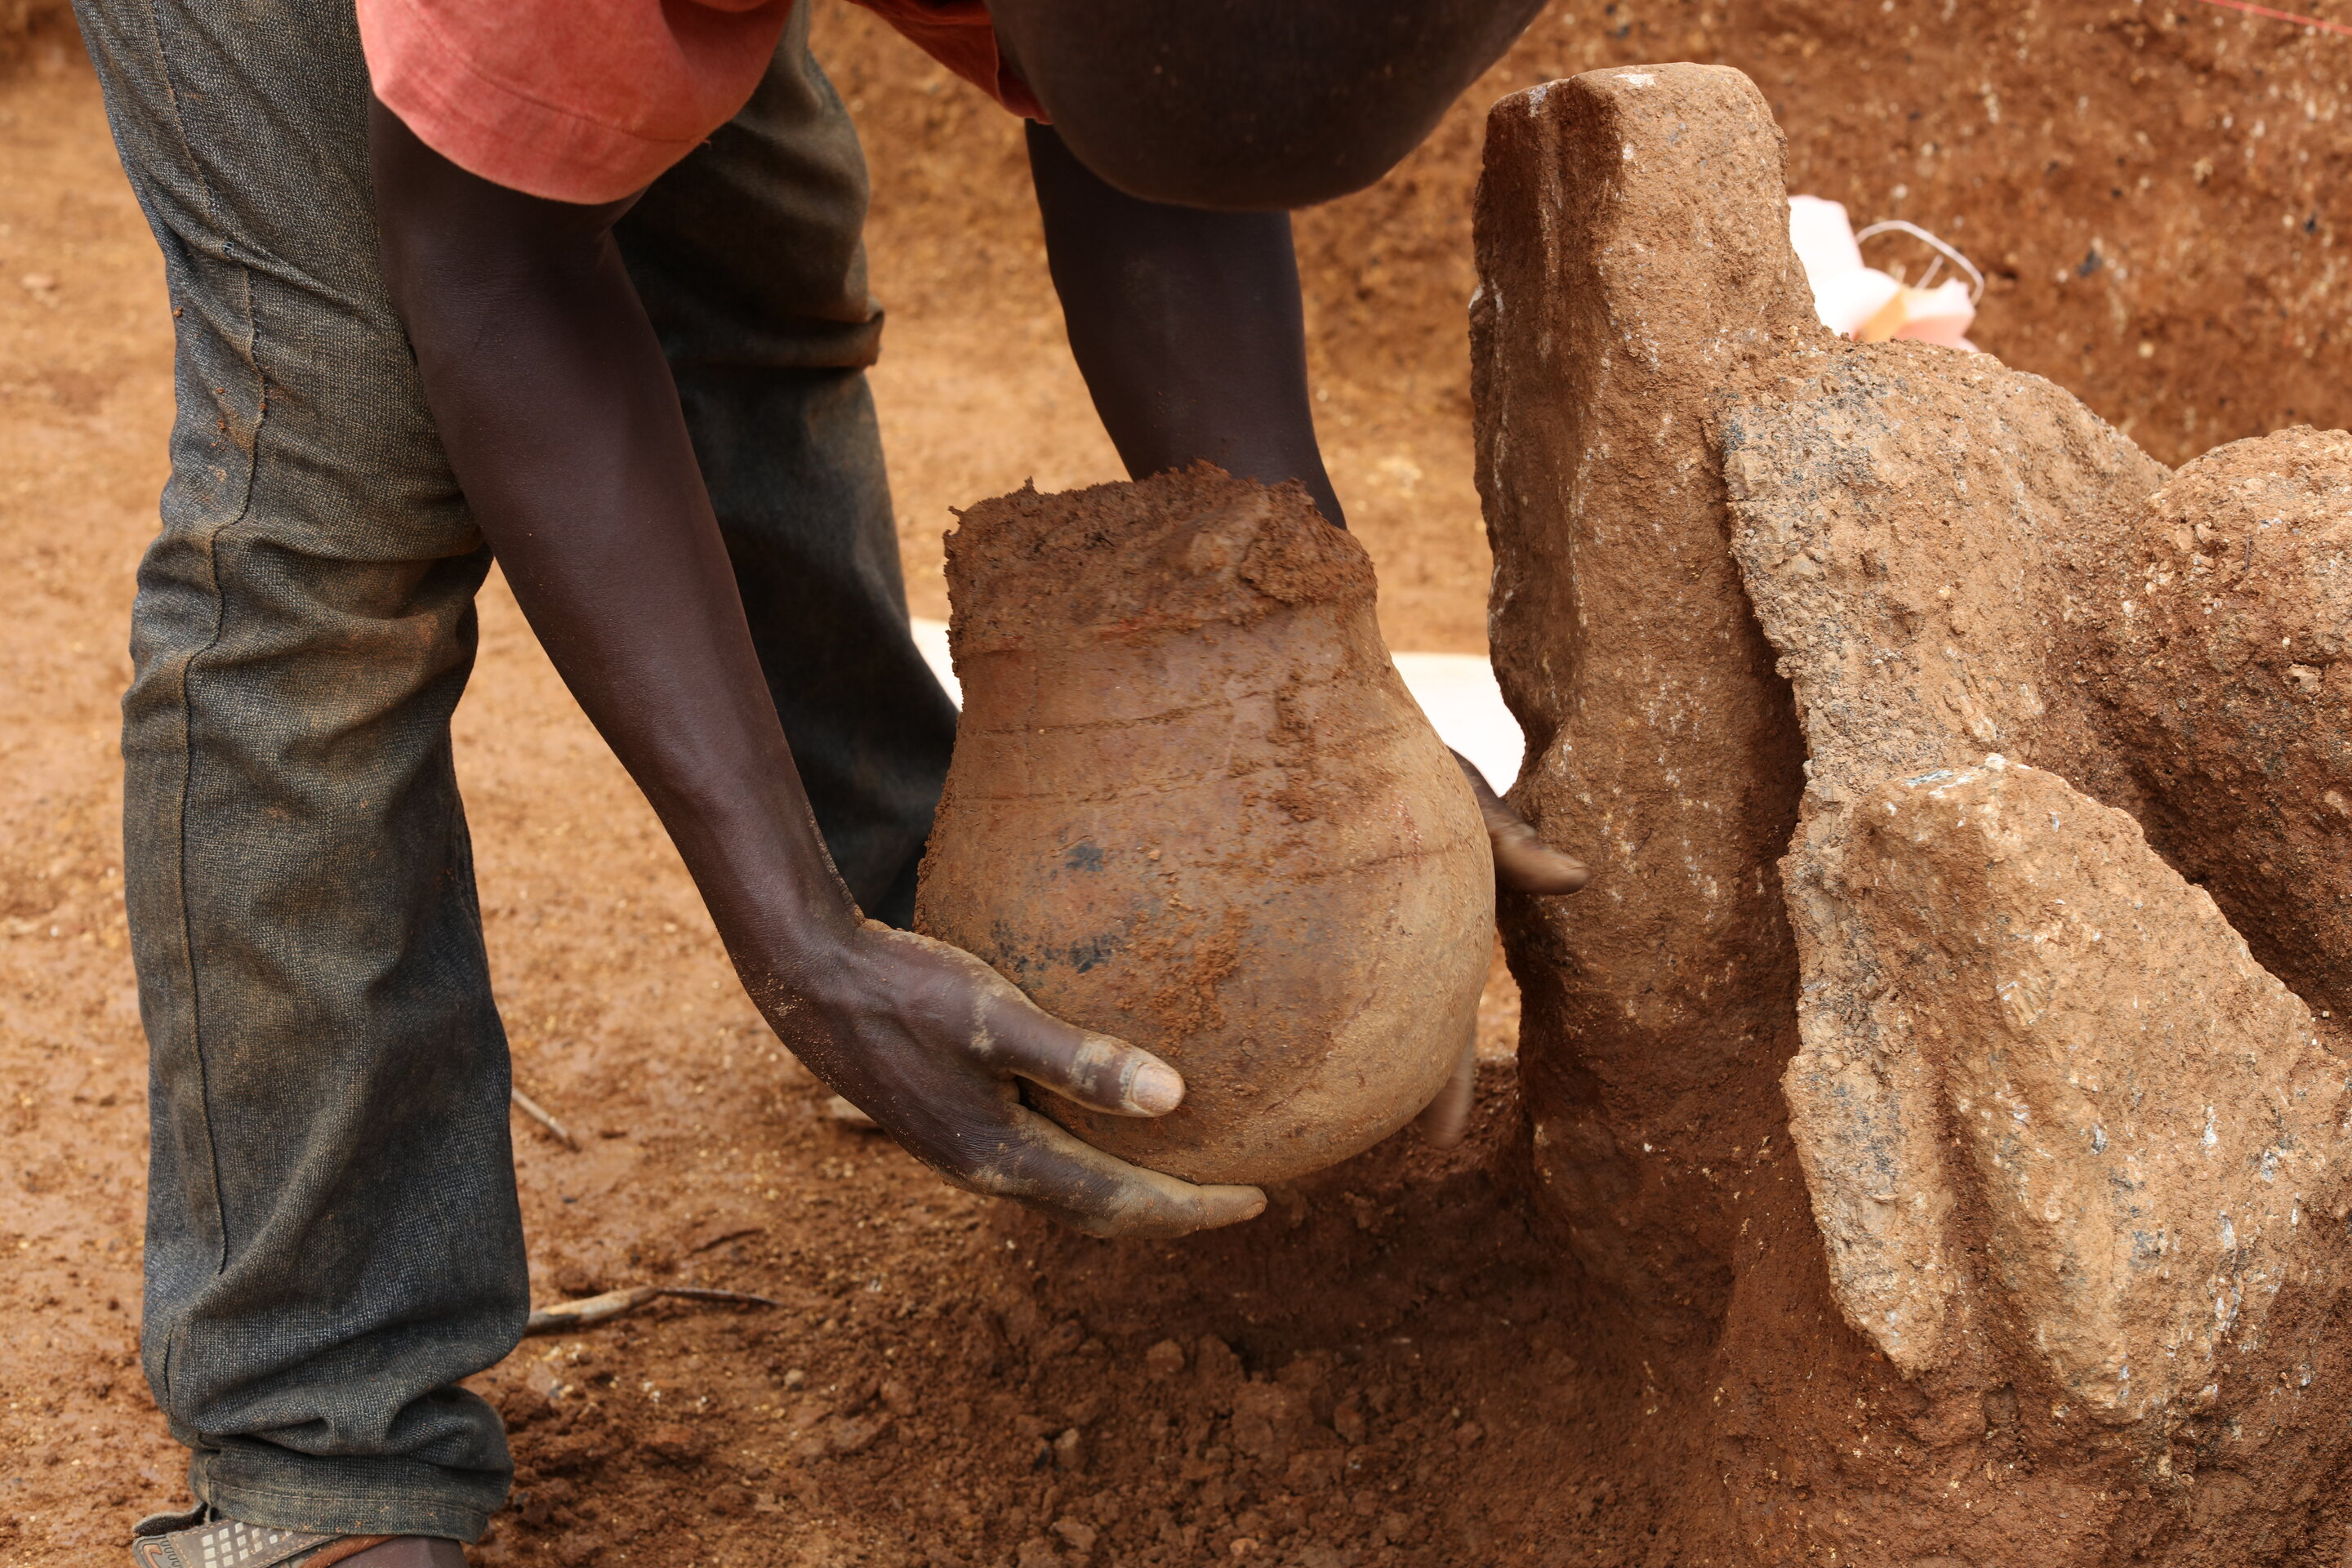 3,500-year-old honeypot is the oldest direct evidence for honey collecting in Africa